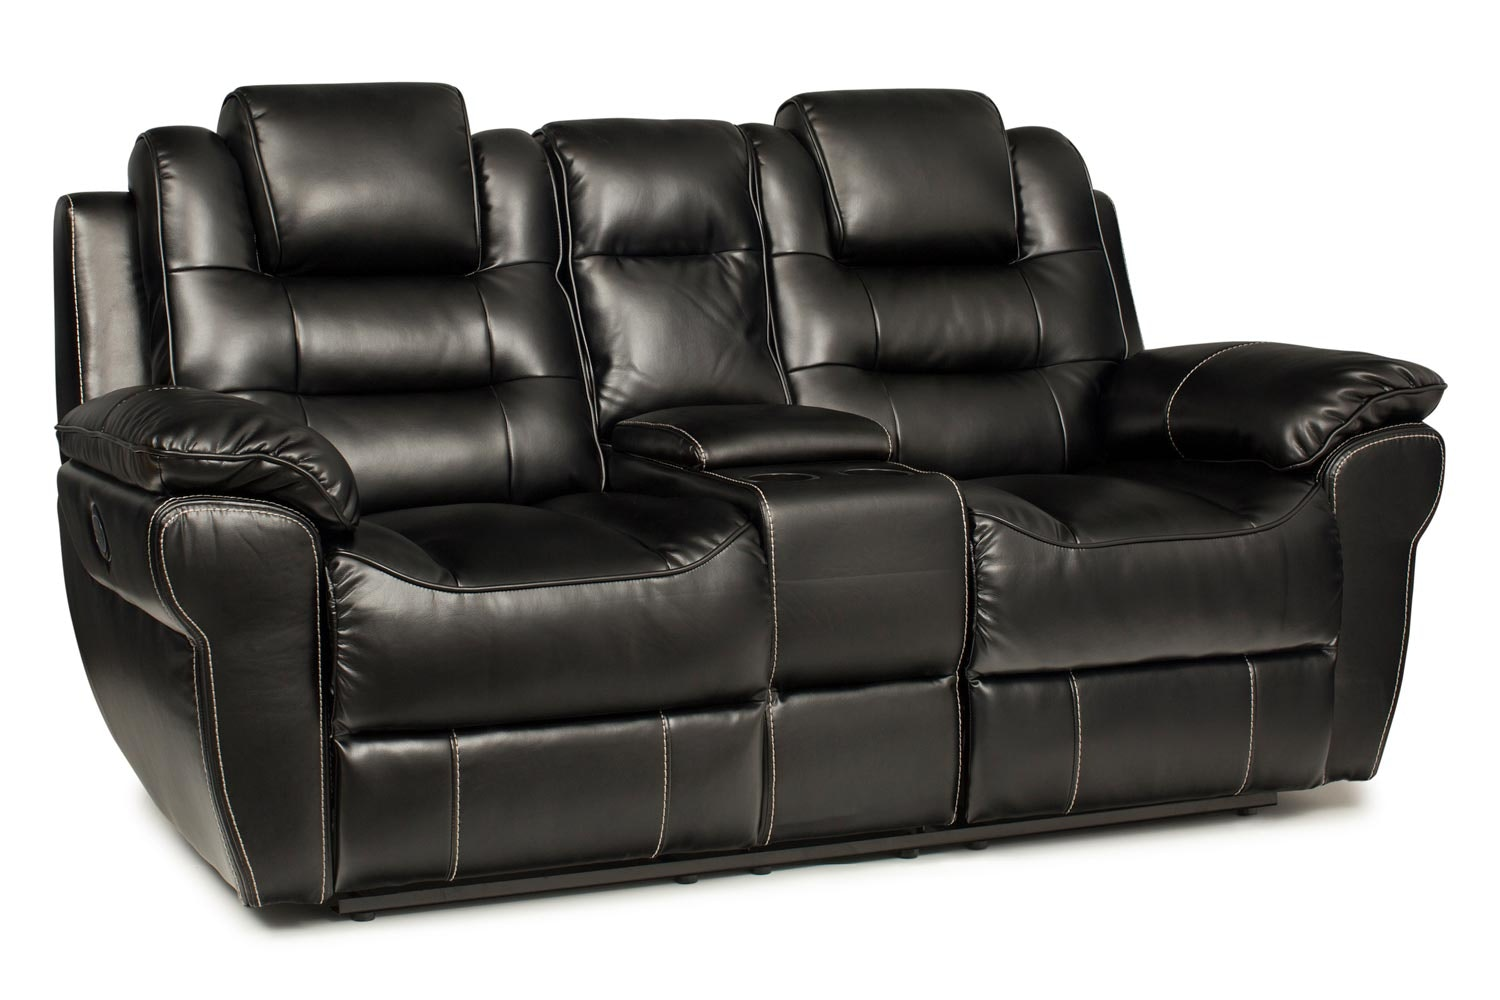 Baxter 2 Seater Electric Recliner With Console Black Ireland